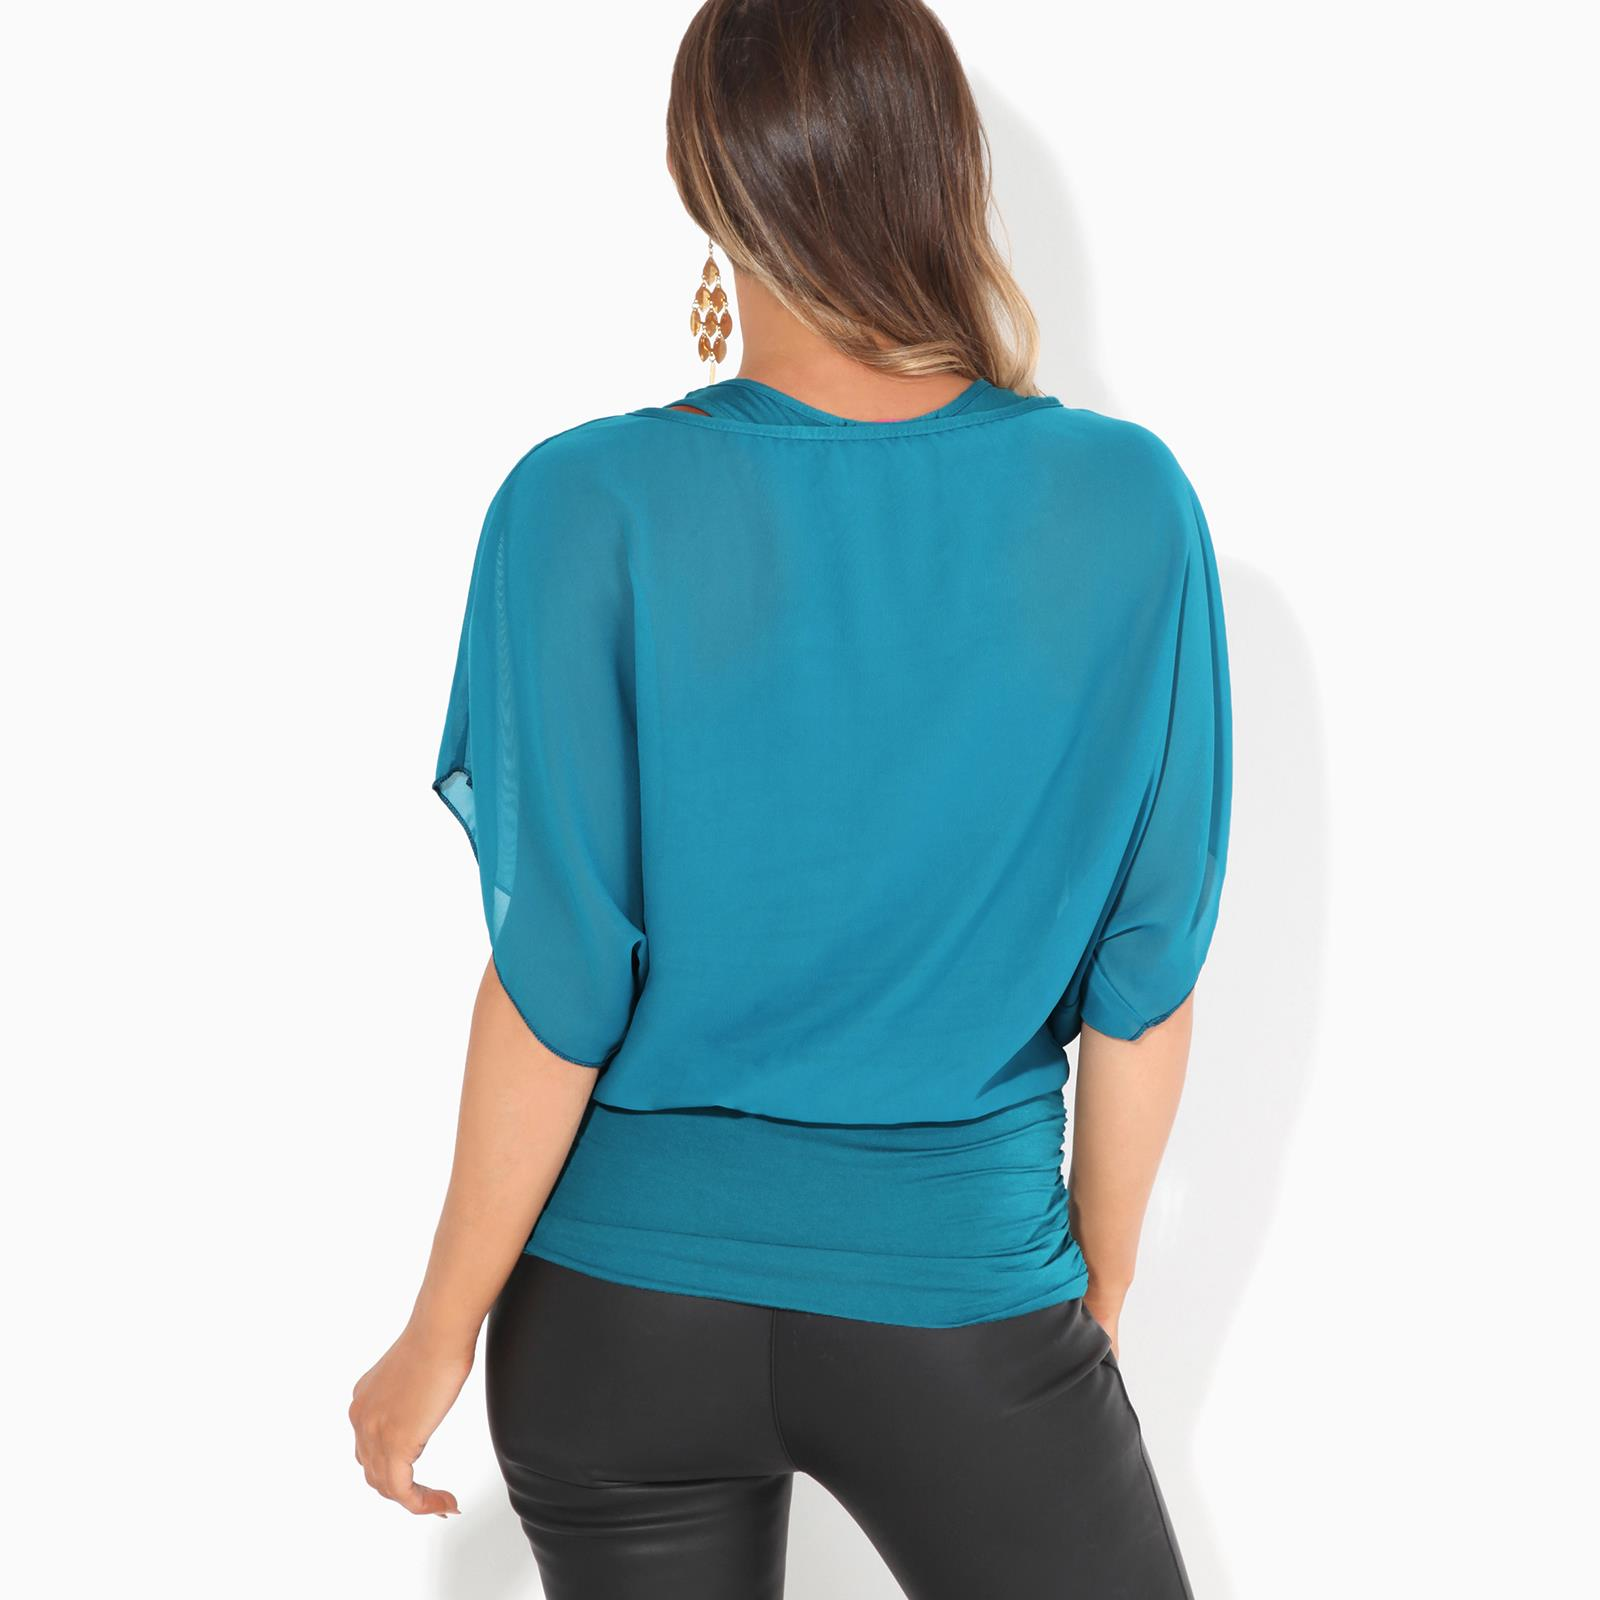 Womens-Scoop-Neck-Blouse-Baggy-Batwing-T-Shirt-Top-Ladies-Oversized-Chiffon-2in1 thumbnail 31